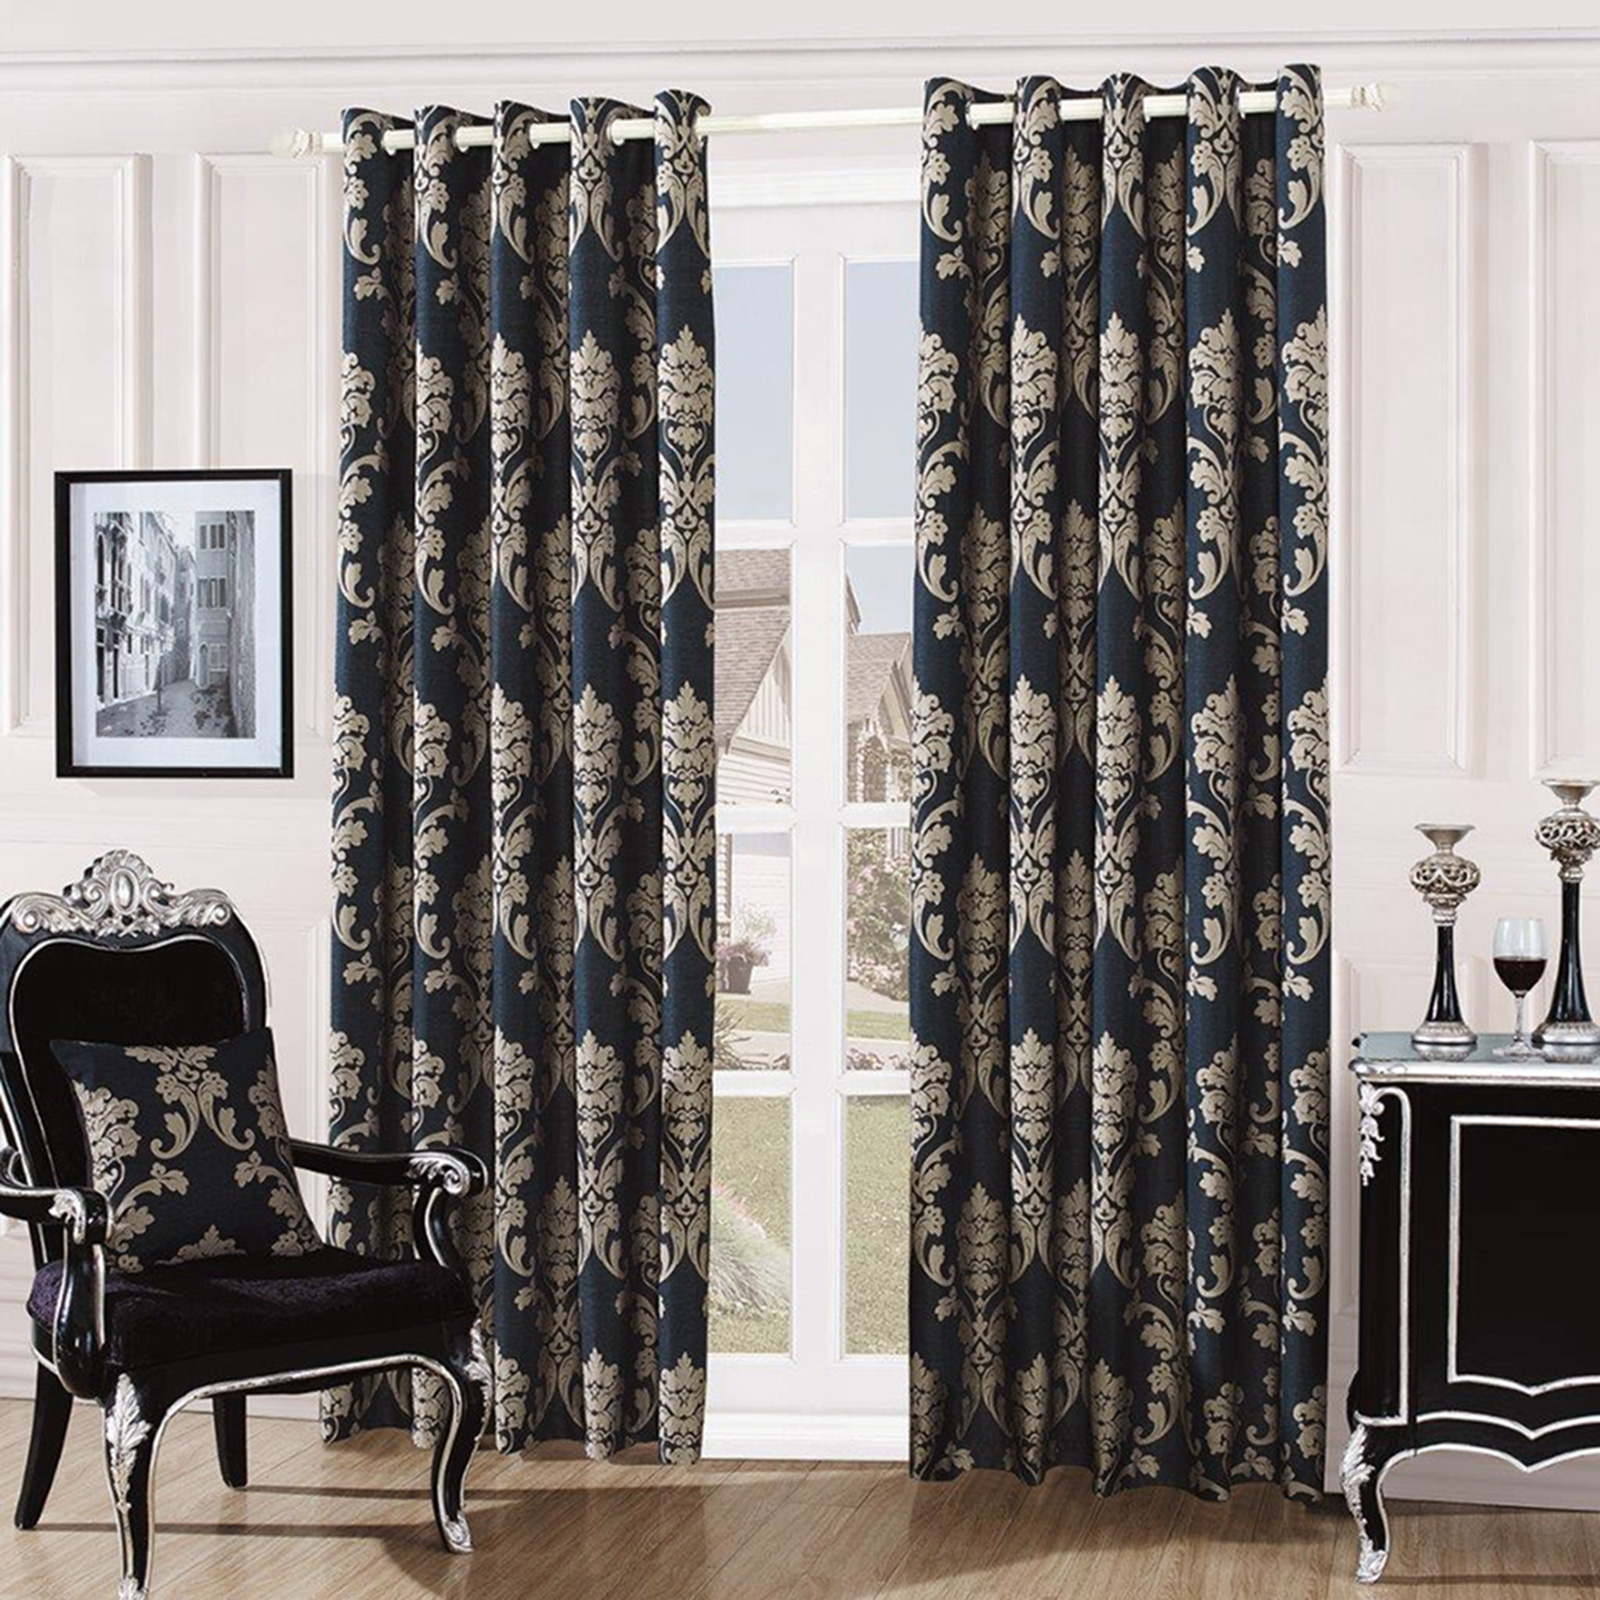 Damask curtains living room - Fully Lined Quality Jacquard Damask Curtains Ready Made